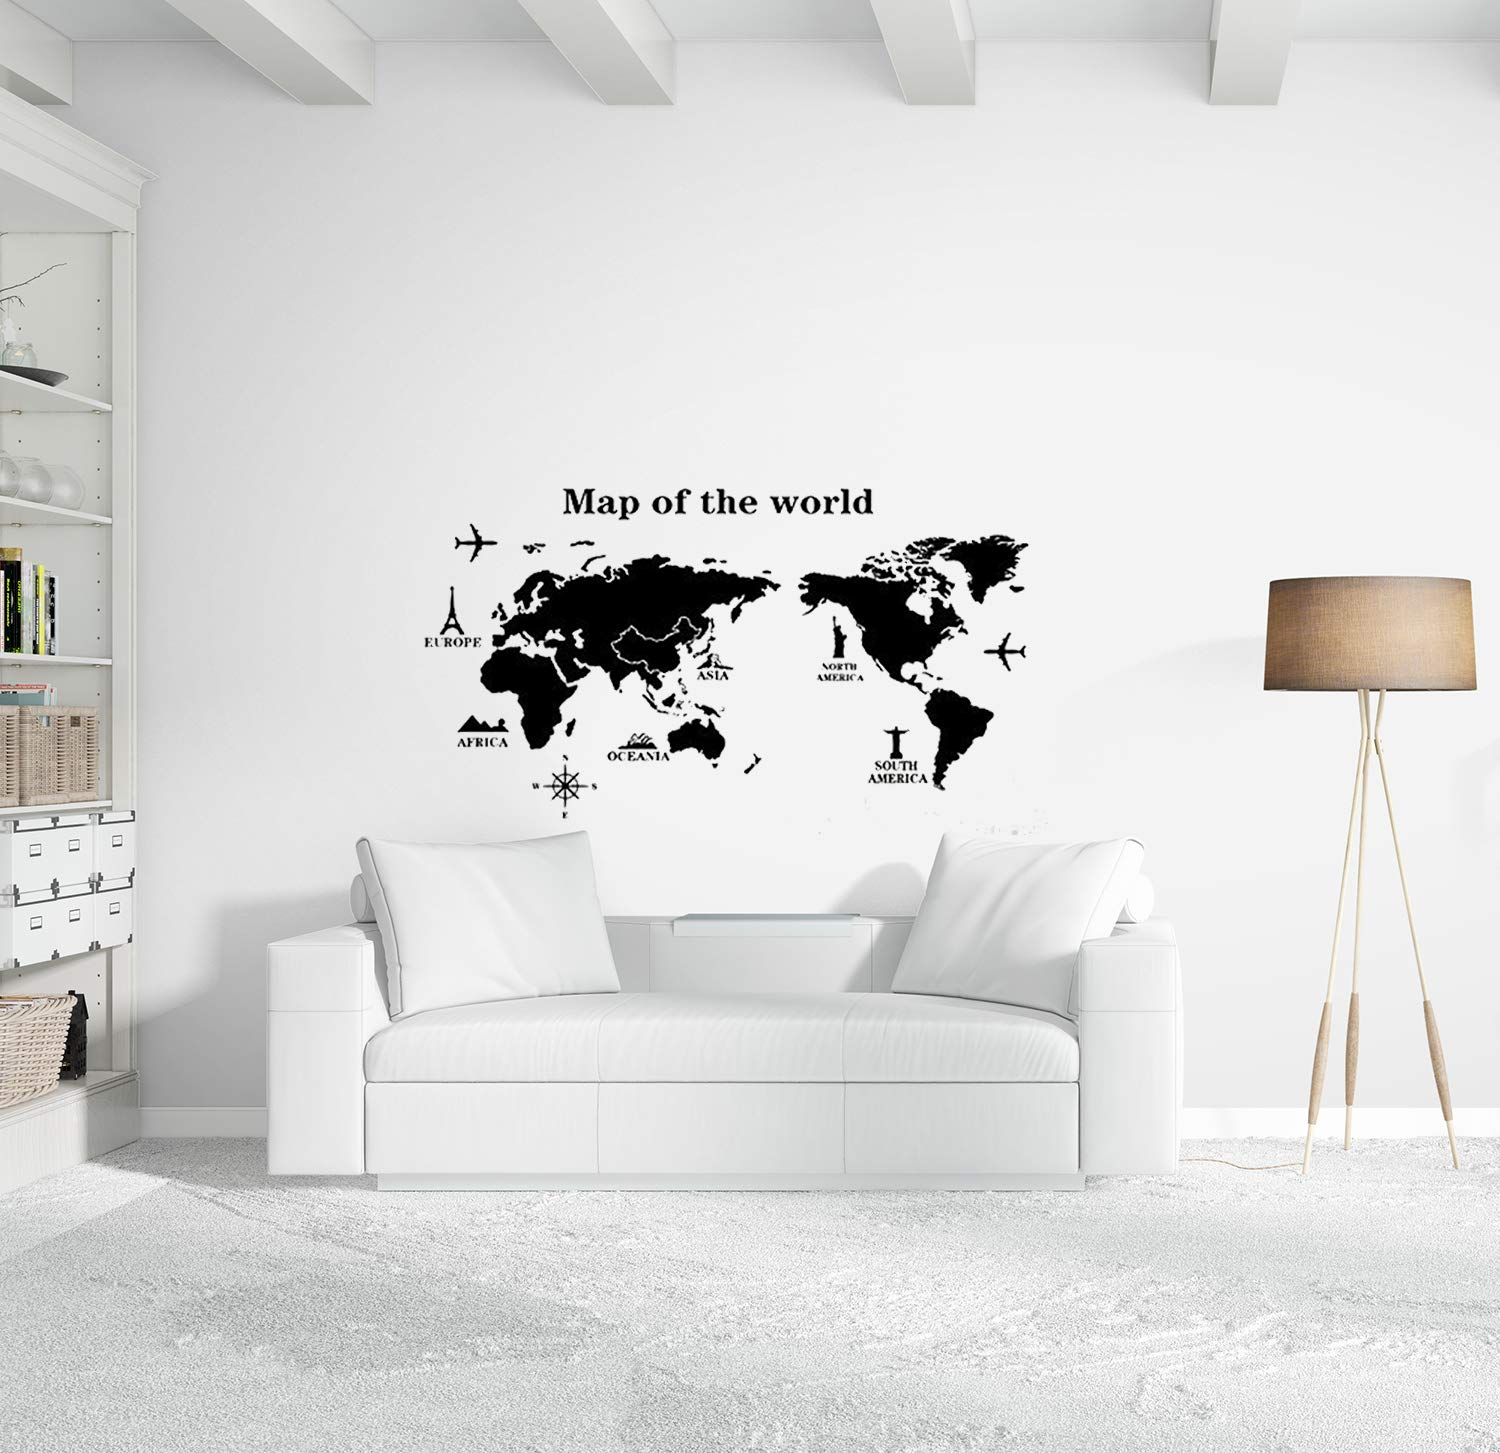 Wall Decals - World Map - World Map Wall Decal - Educational Decal on map facebook covers, map wall mirror, map wall artwork, west point decal, diamond window decal, map wallpaper, wrench decal, map wall graphics, pirate life decal, map wall clock, trd hood decal, map paper, map united states football league, map wall mural, map your neighborhood, map with title, map shirt, nautical compass decal, wwp decal, map kashmir conflict,